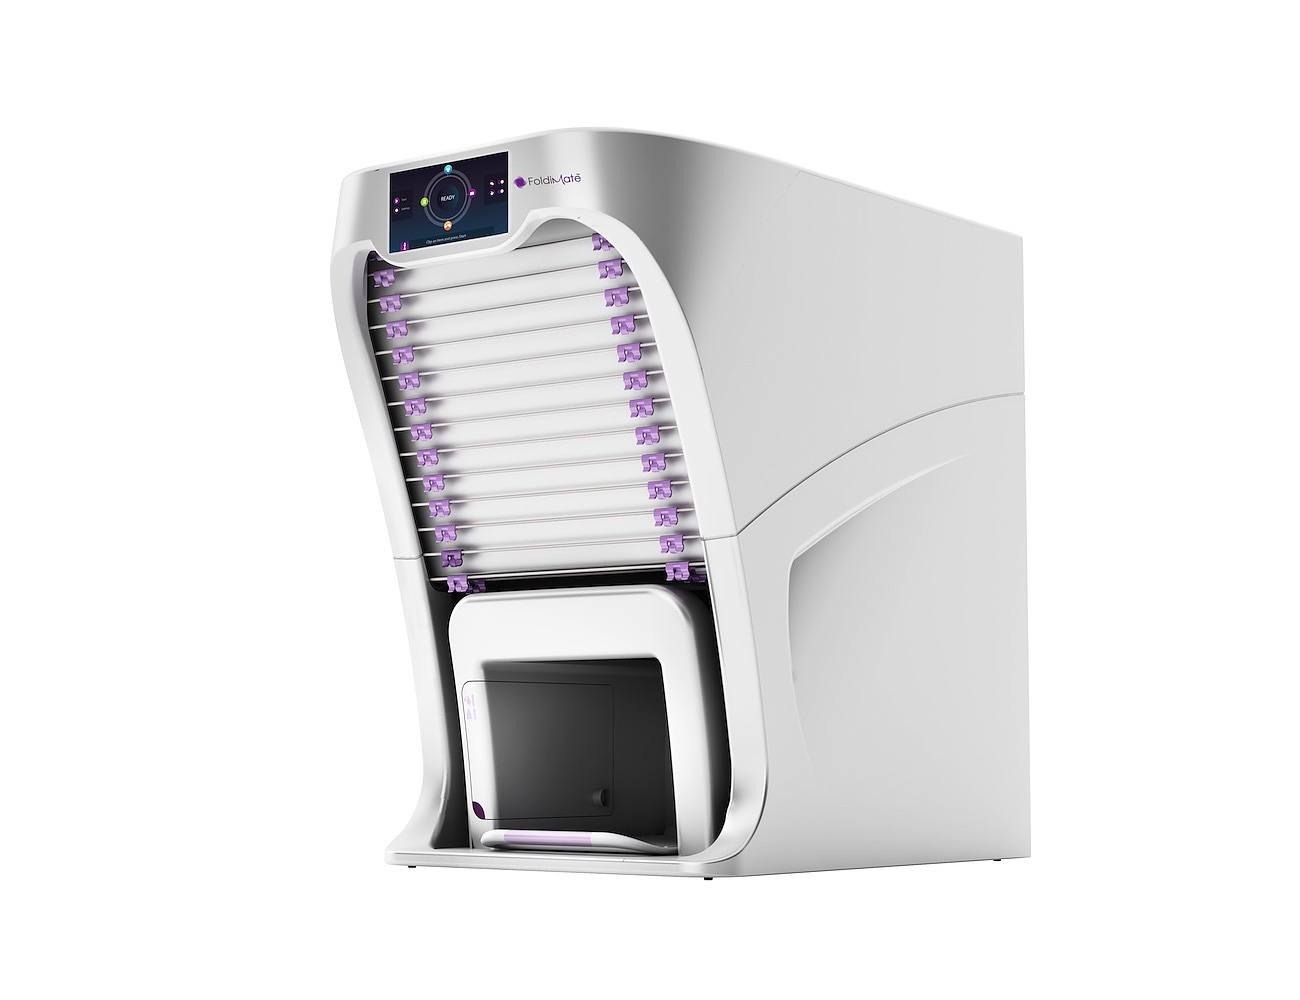 FoldiMate – The Laundry Folding Machine